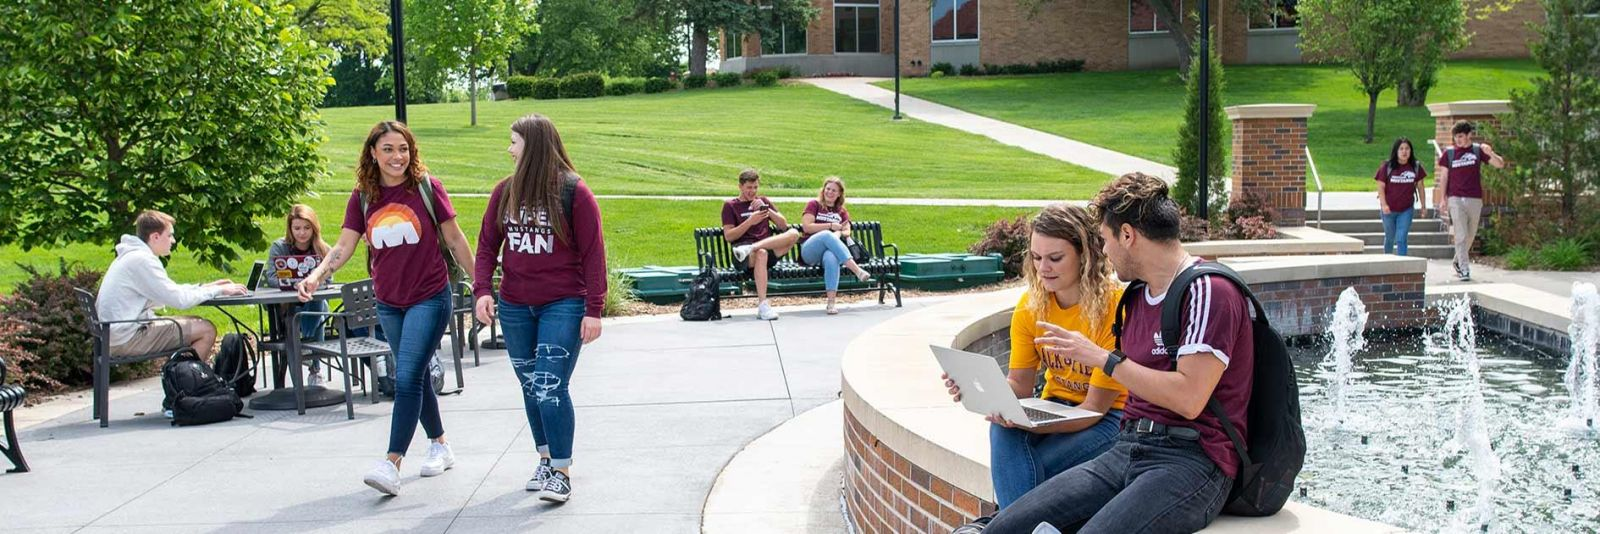 Morningside students walking outside in front of the fountain near the Krone Center on campus.